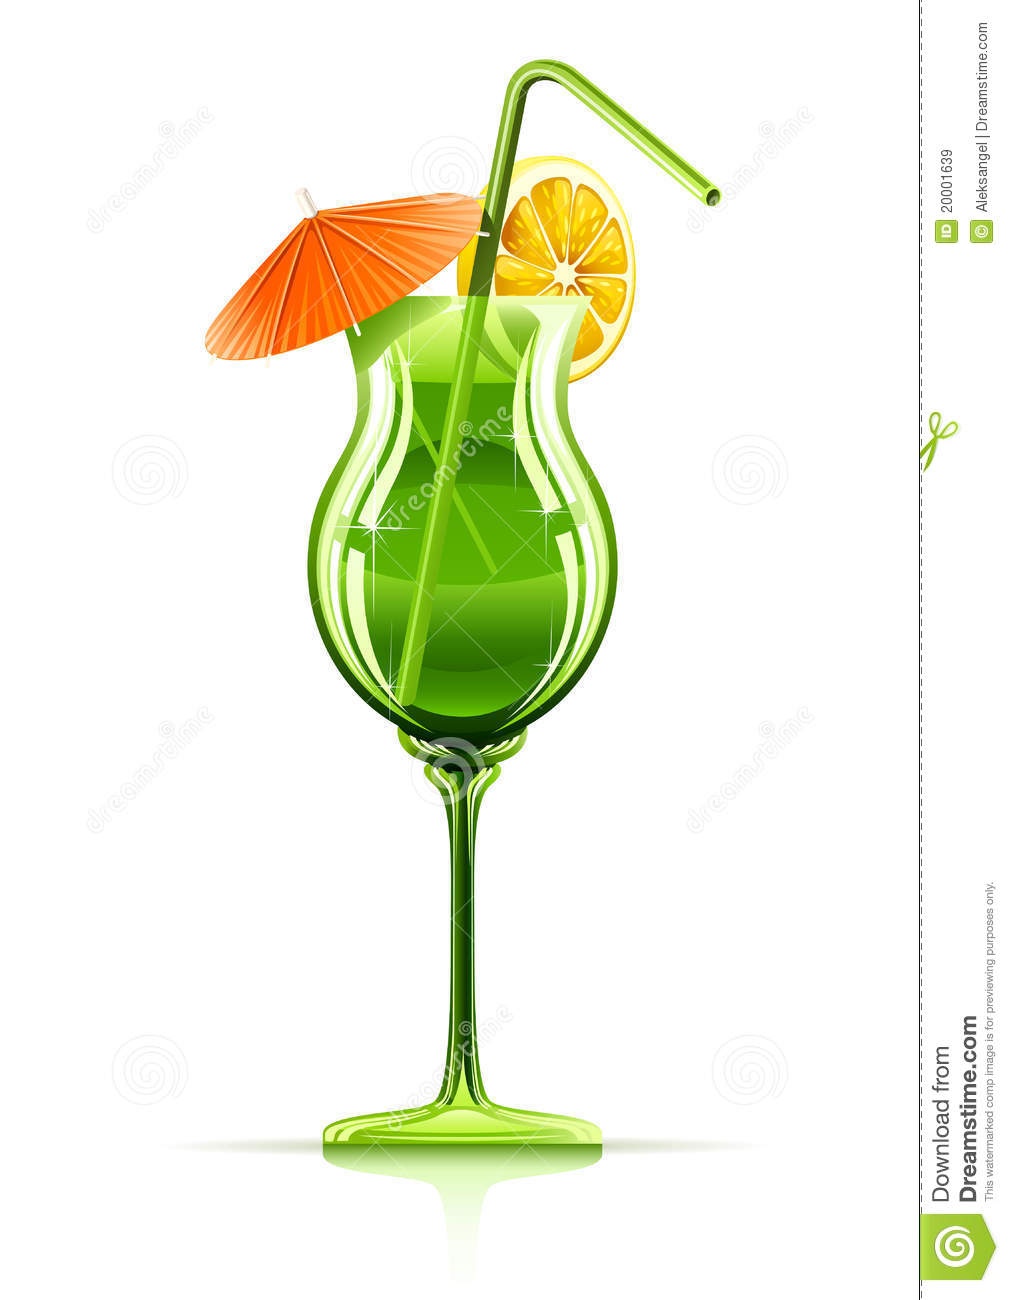 Tropical Cocktail In Glass Royalty Free Stock Images - Image: 20001639